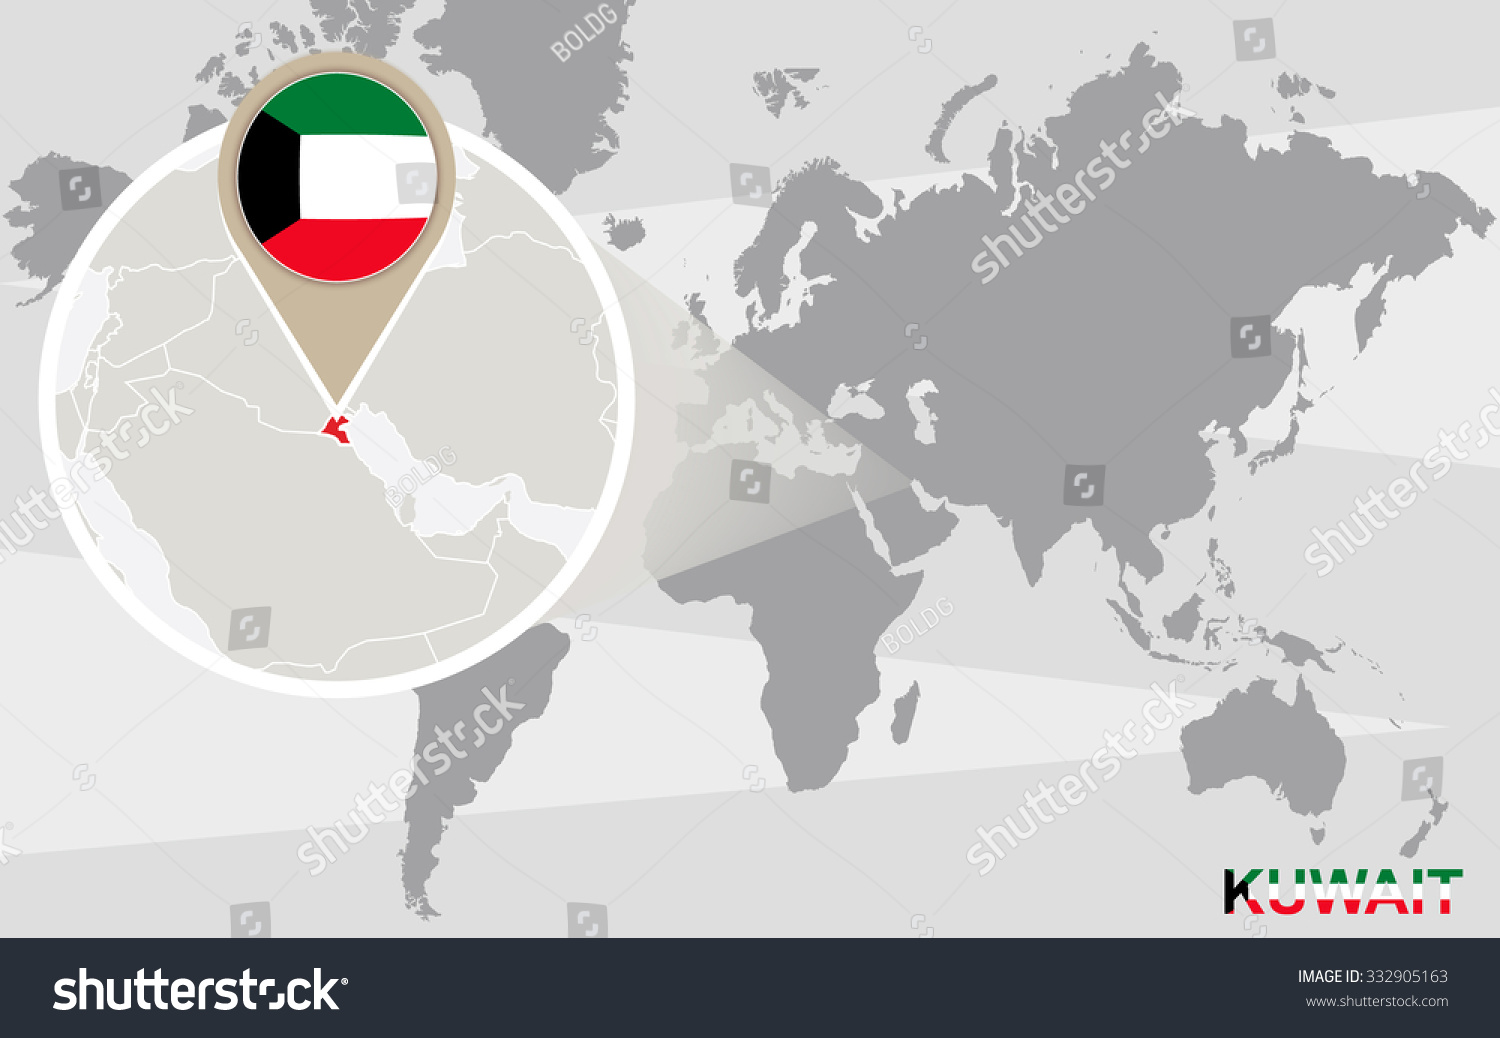 World map magnified kuwait kuwait flag stock illustration world map with magnified kuwait kuwait flag and map rasterized copy gumiabroncs Image collections